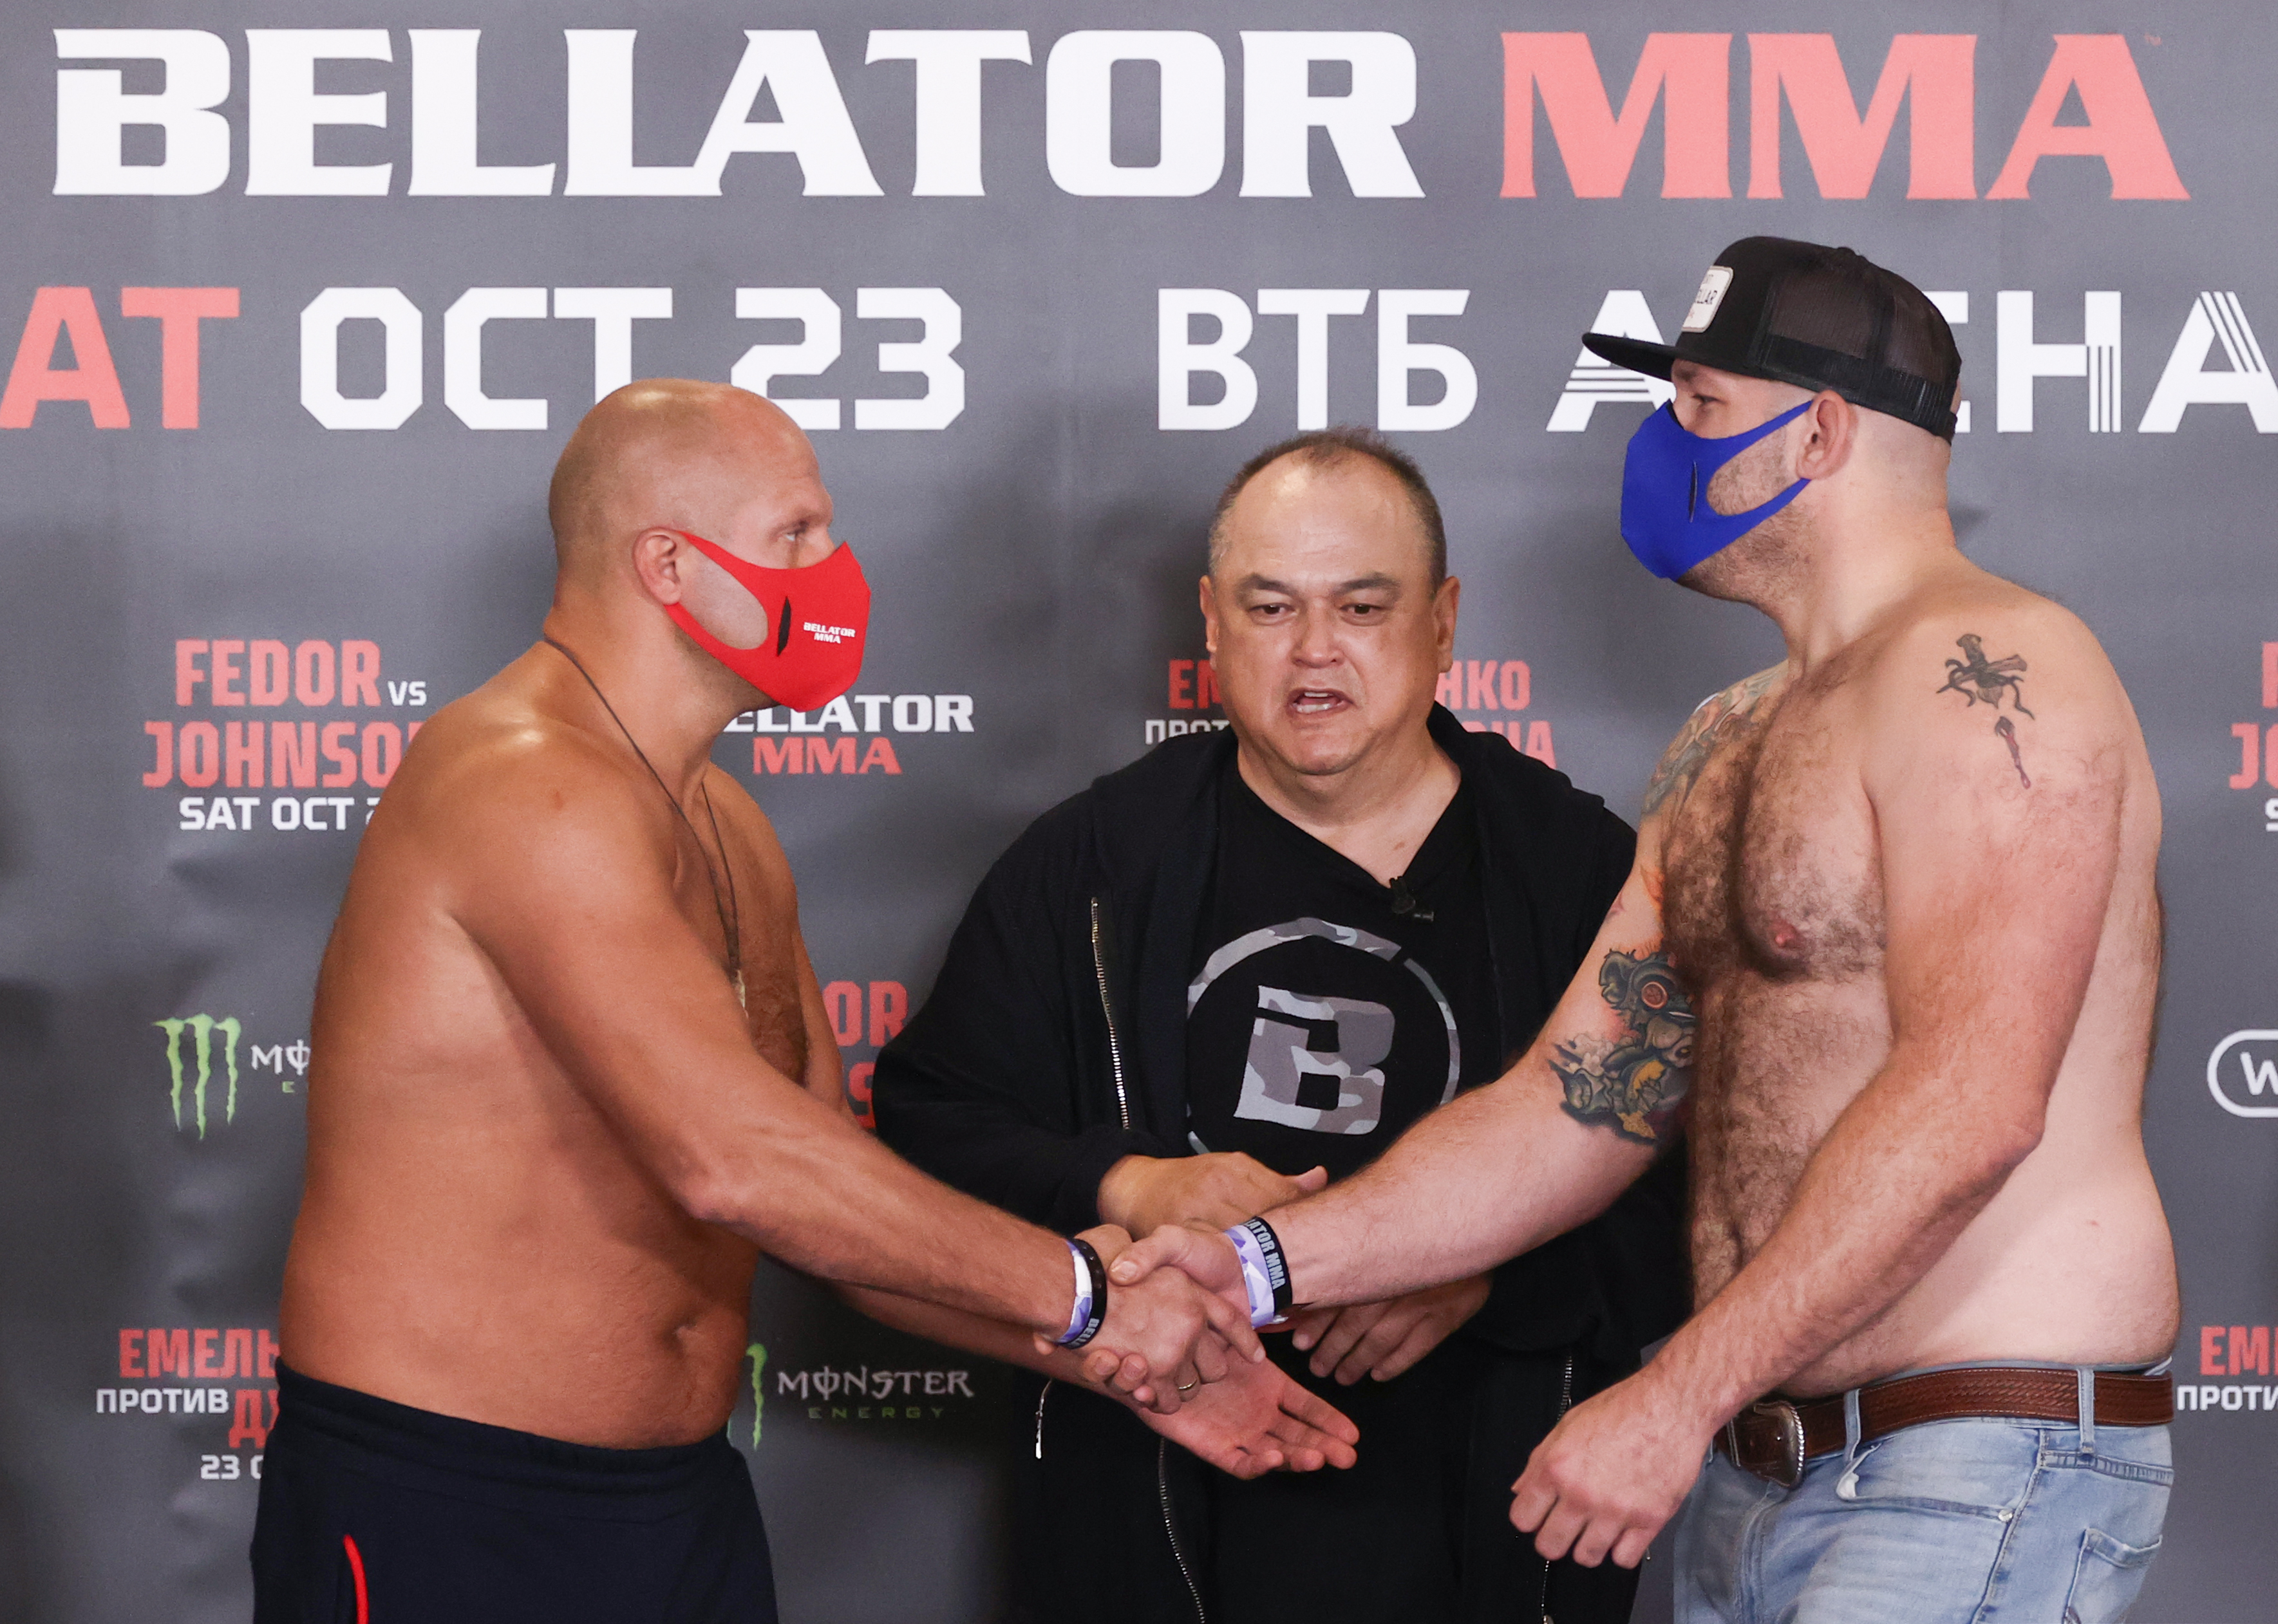 Official weigh-in ceremony for mixed martial artists taking part in Bellator 269 show